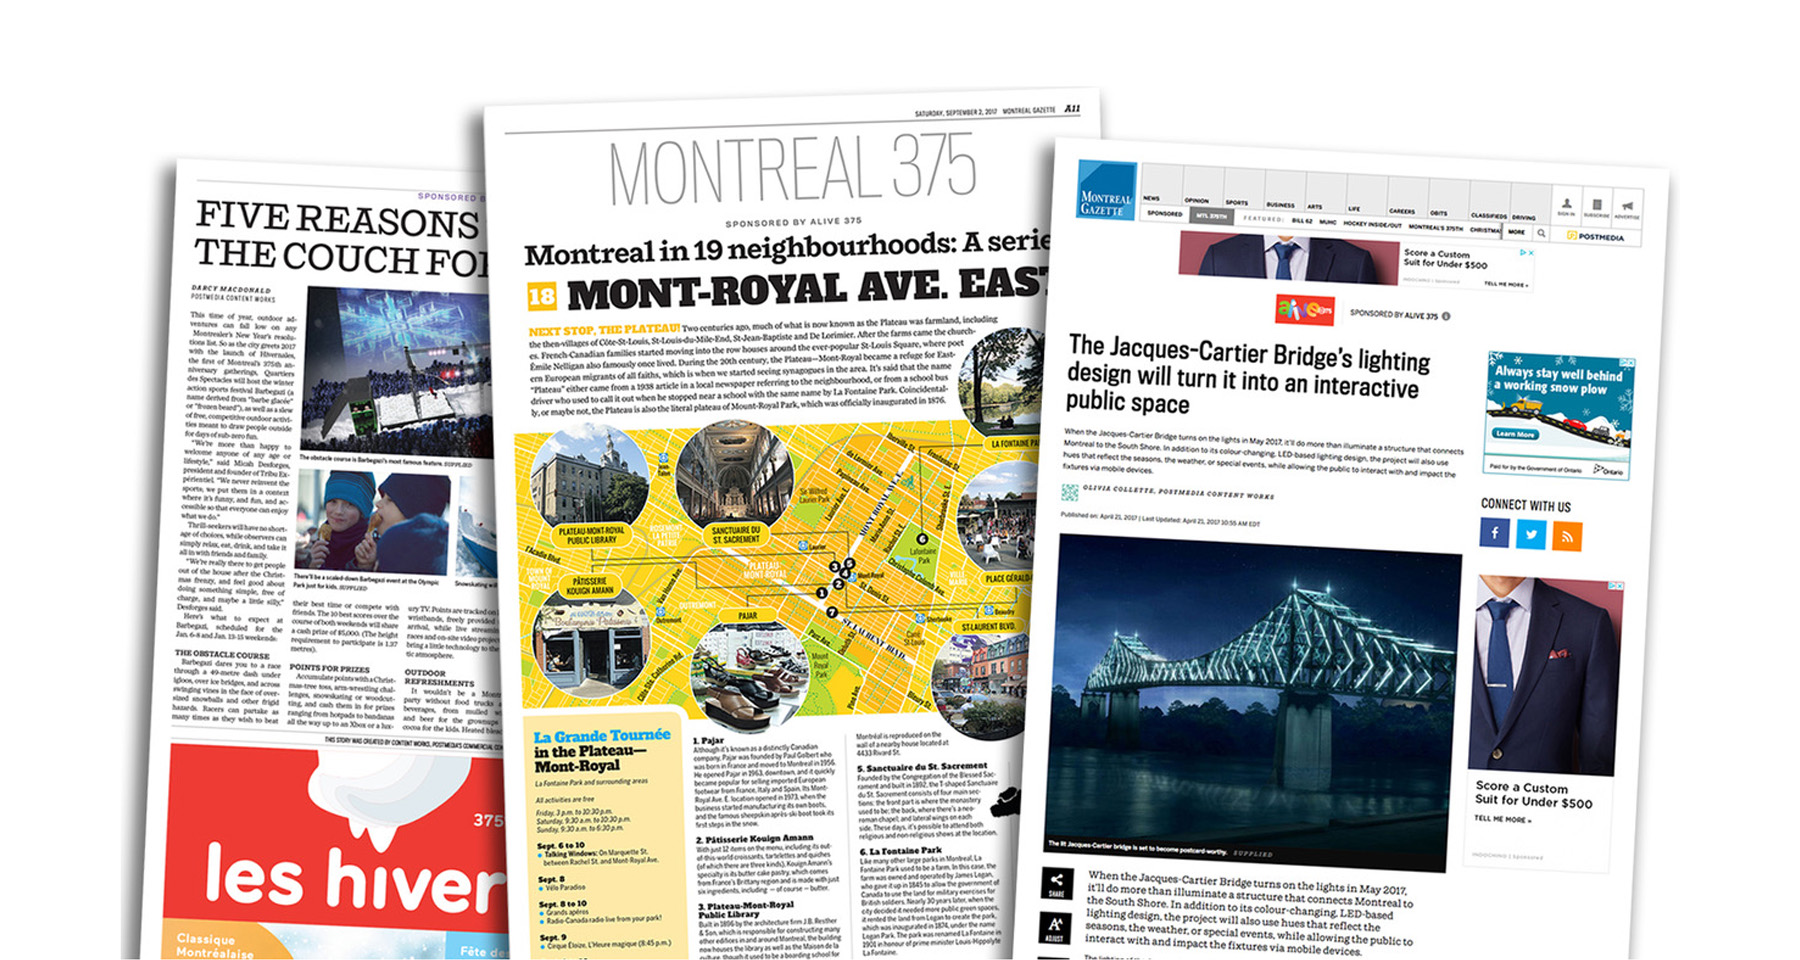 Montreal Gazette maps its way to city's successful 375th anniversary campaign